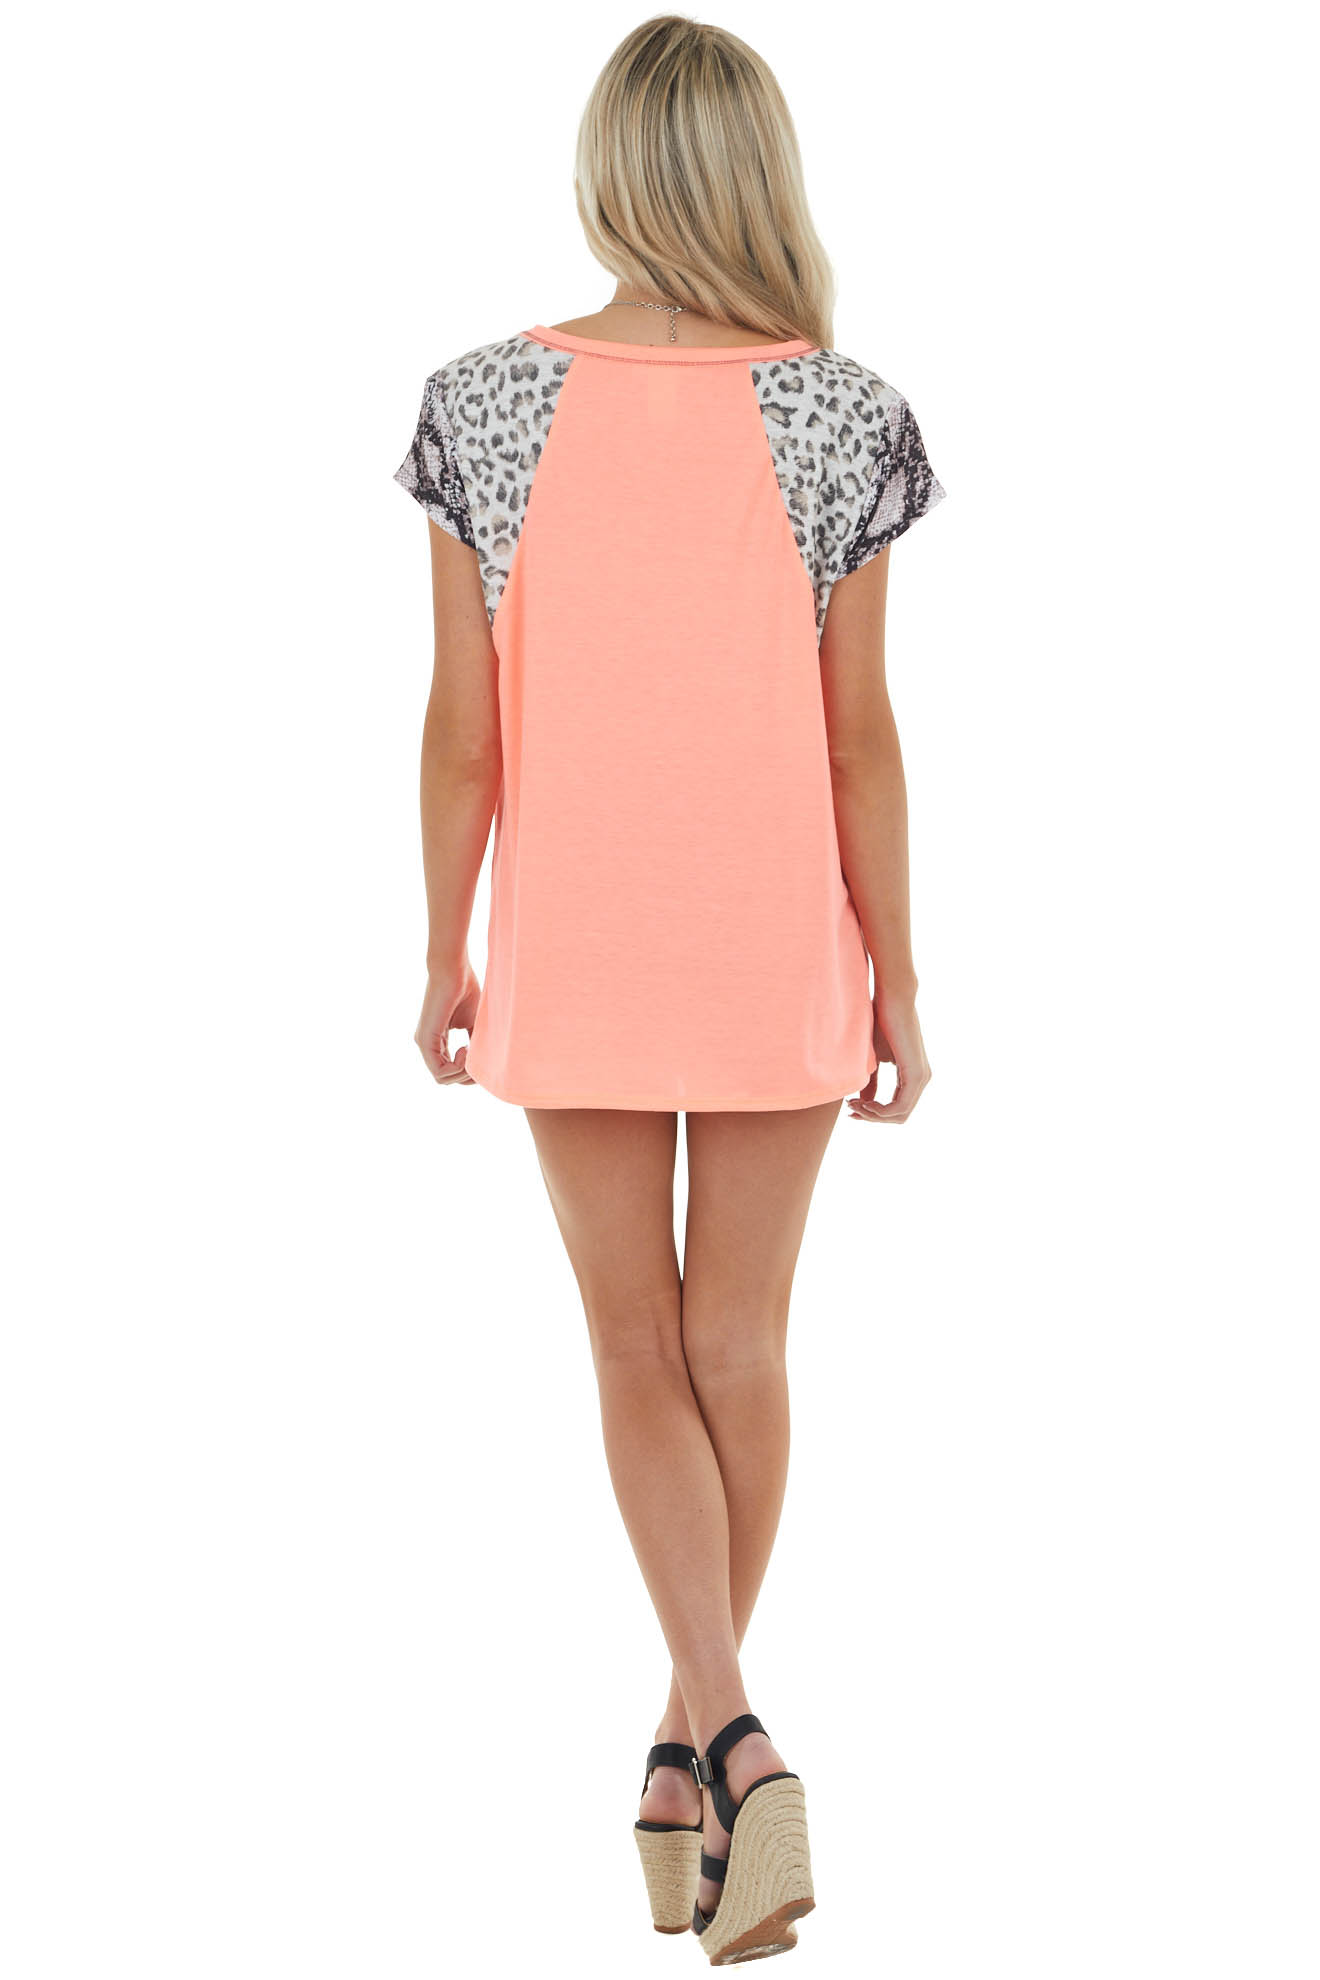 Neon Coral Knit Top with Multiprint Sleeves and Embroidery